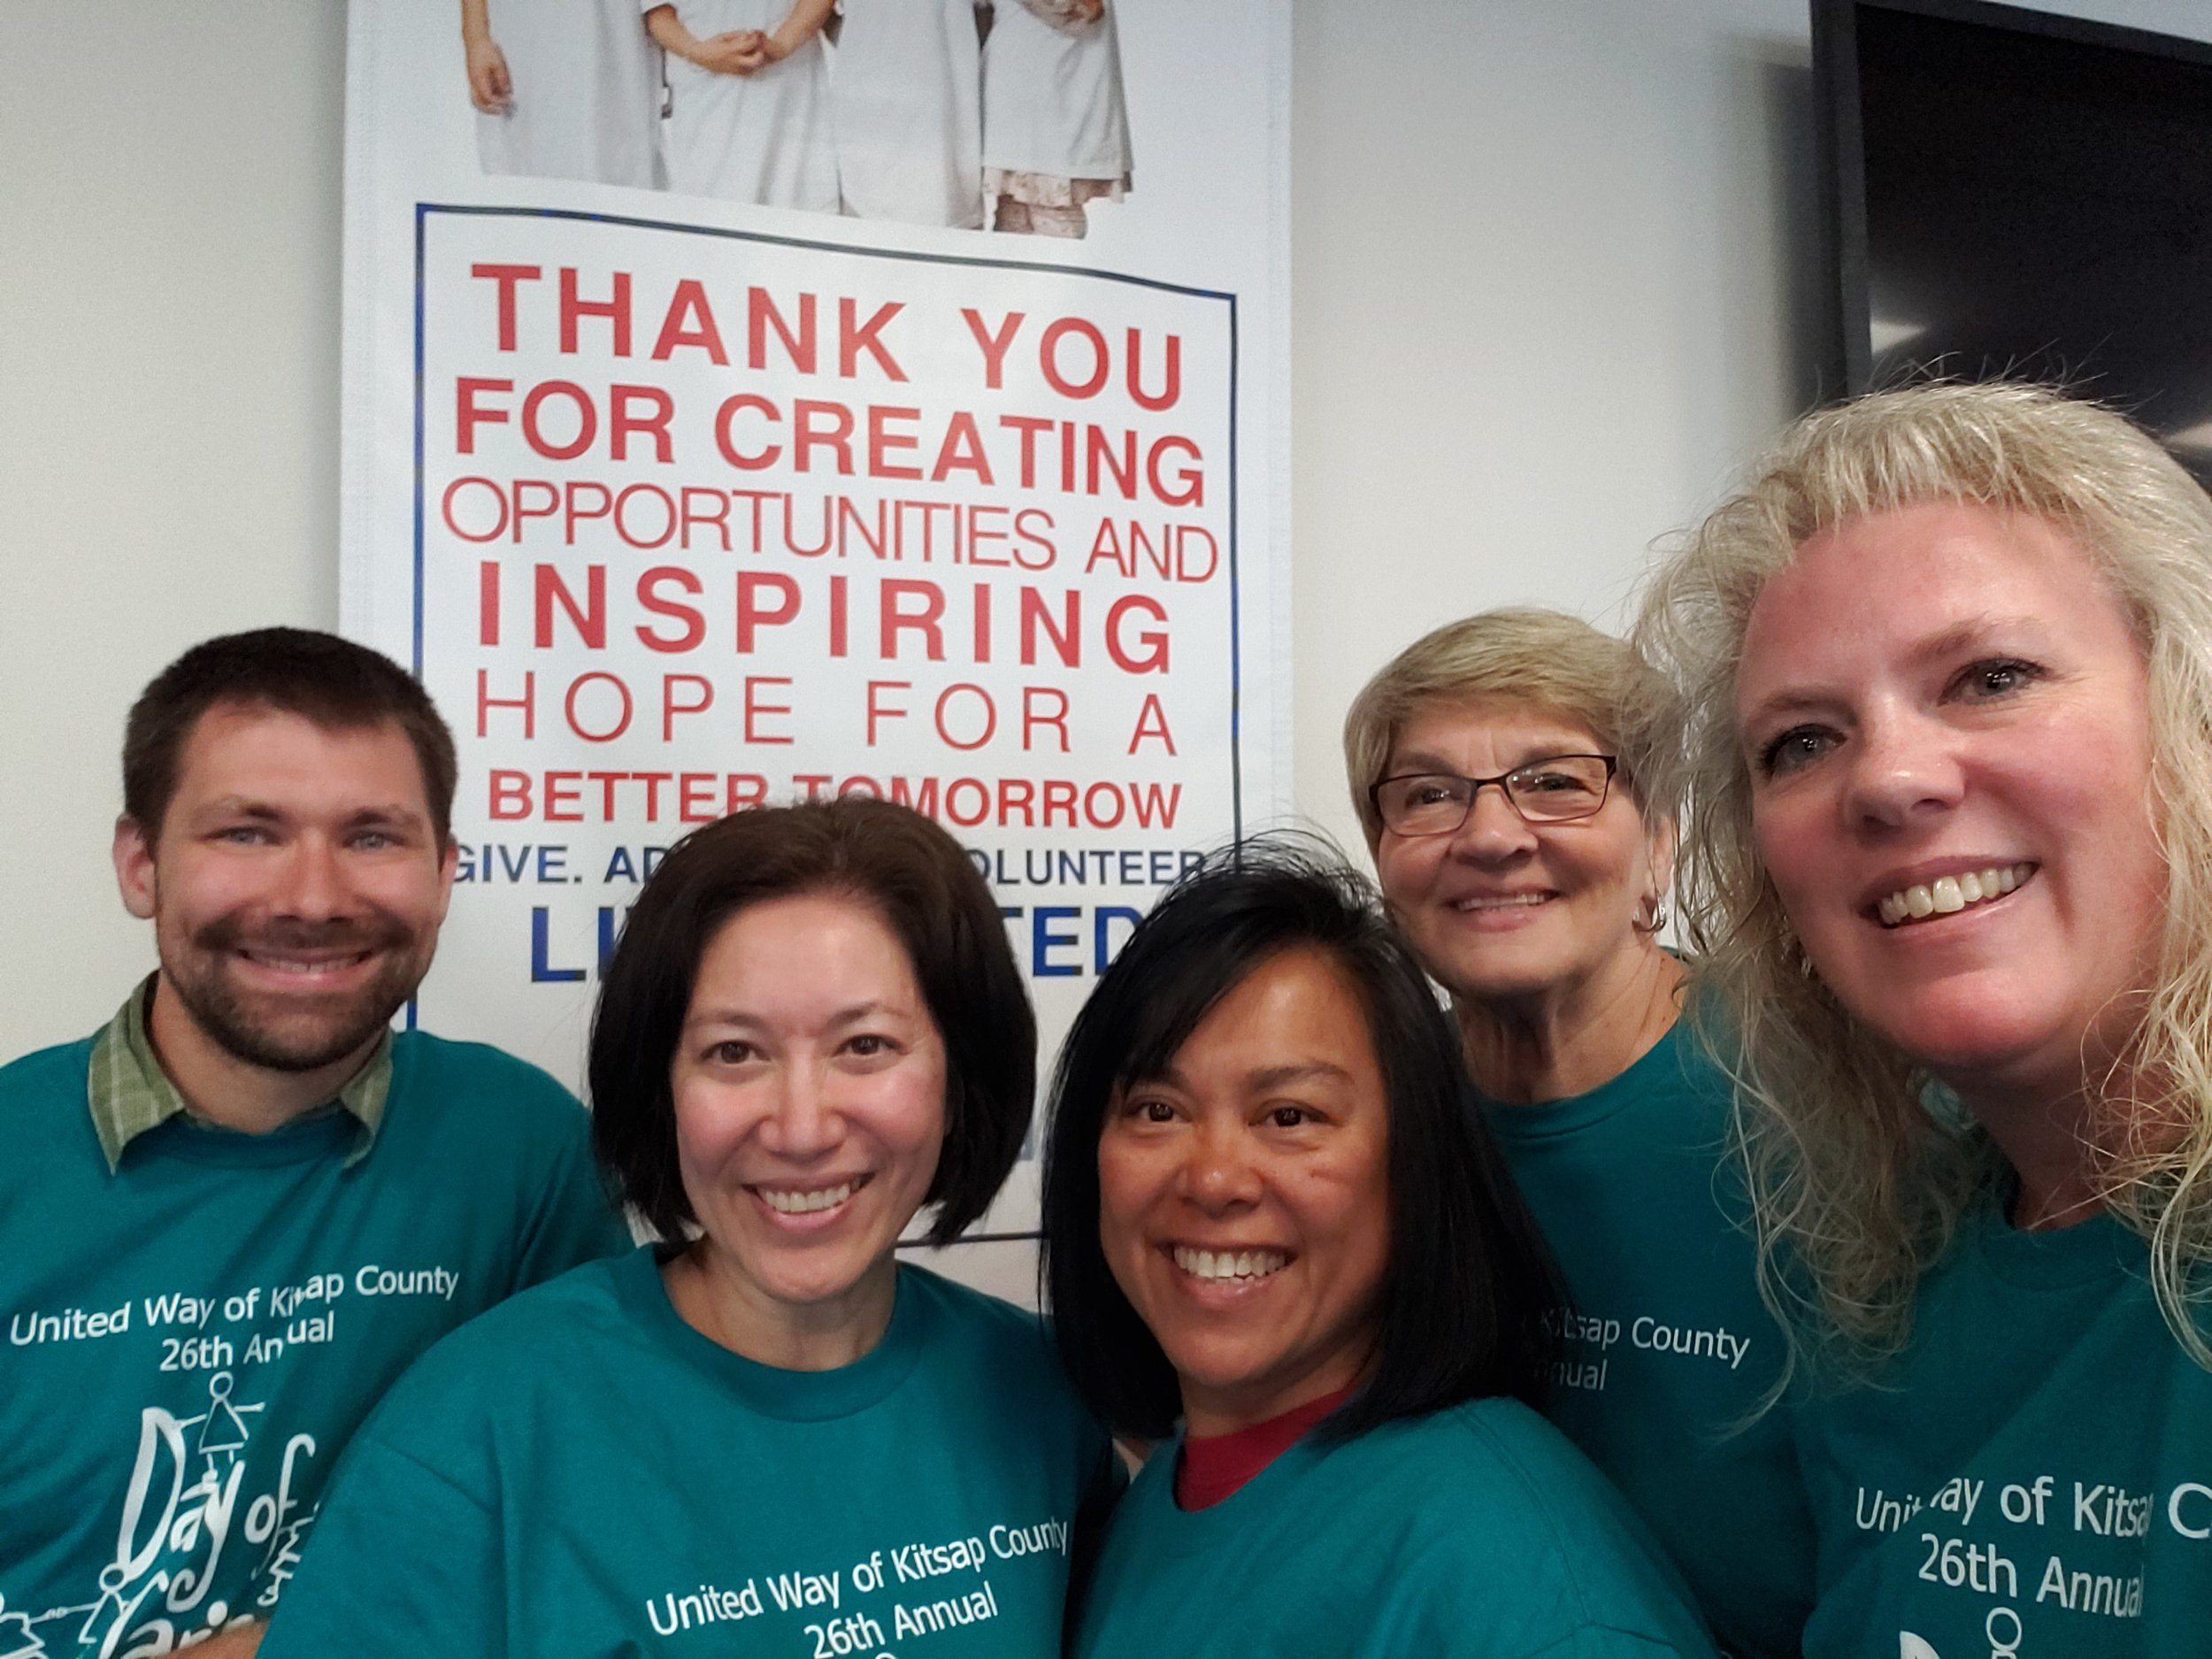 Anton with the amazing volunteers from Columbia Bank during a kit assembly party for the Kitsap County United Way's Day of Caring